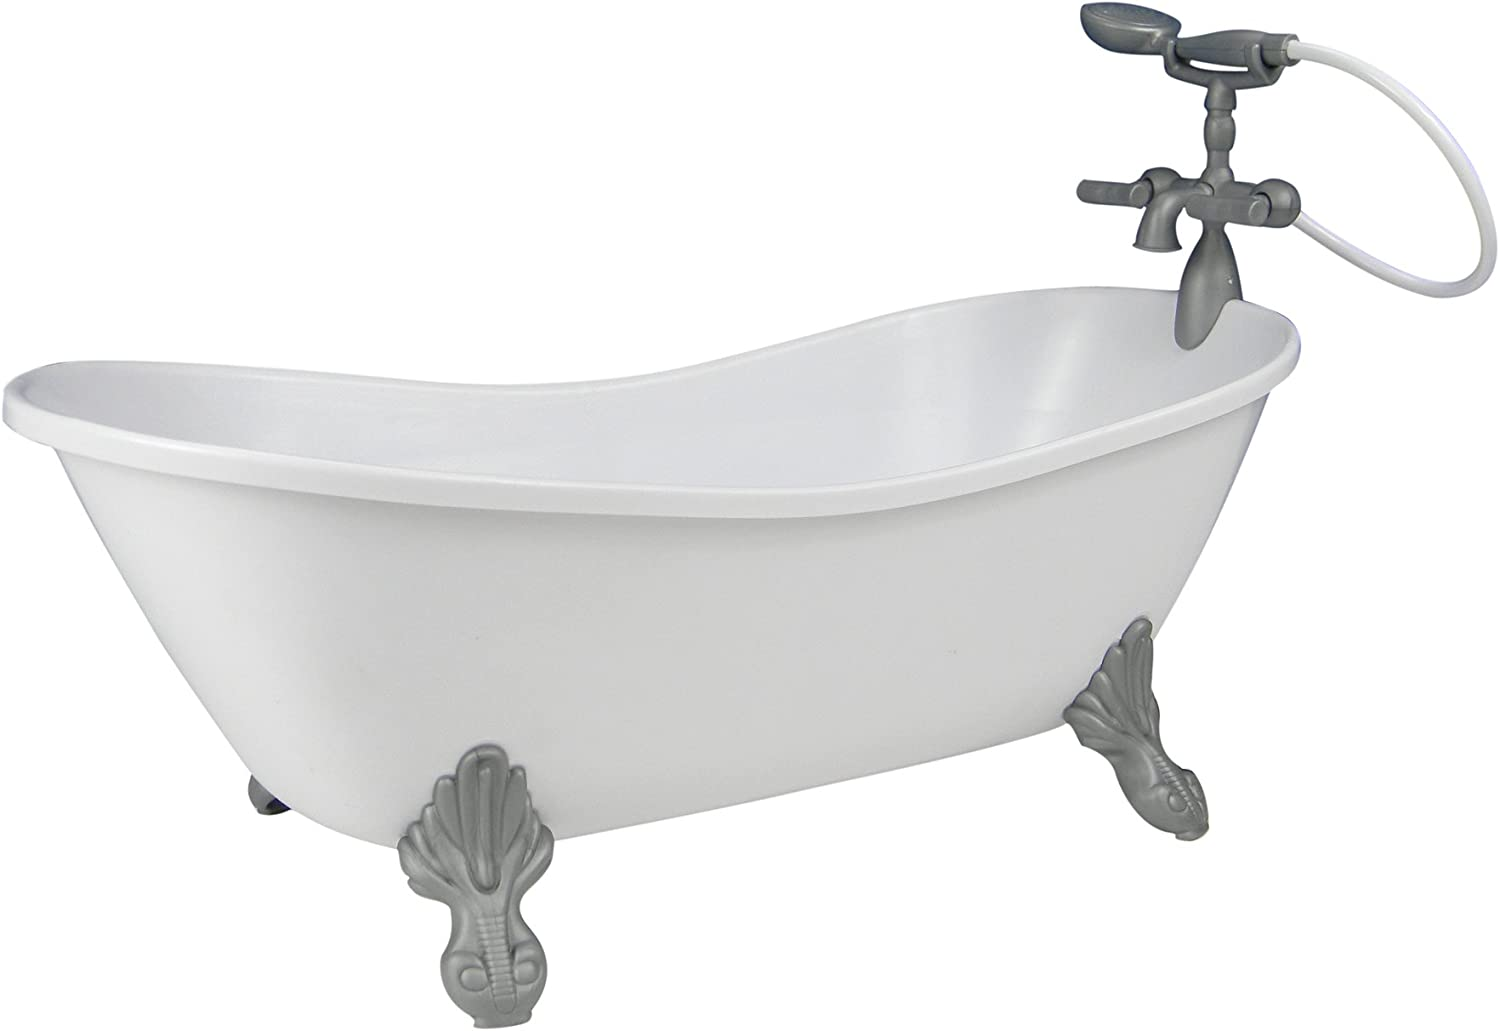 White Doll Bathtub18 Inch Doll Tub with Handshower